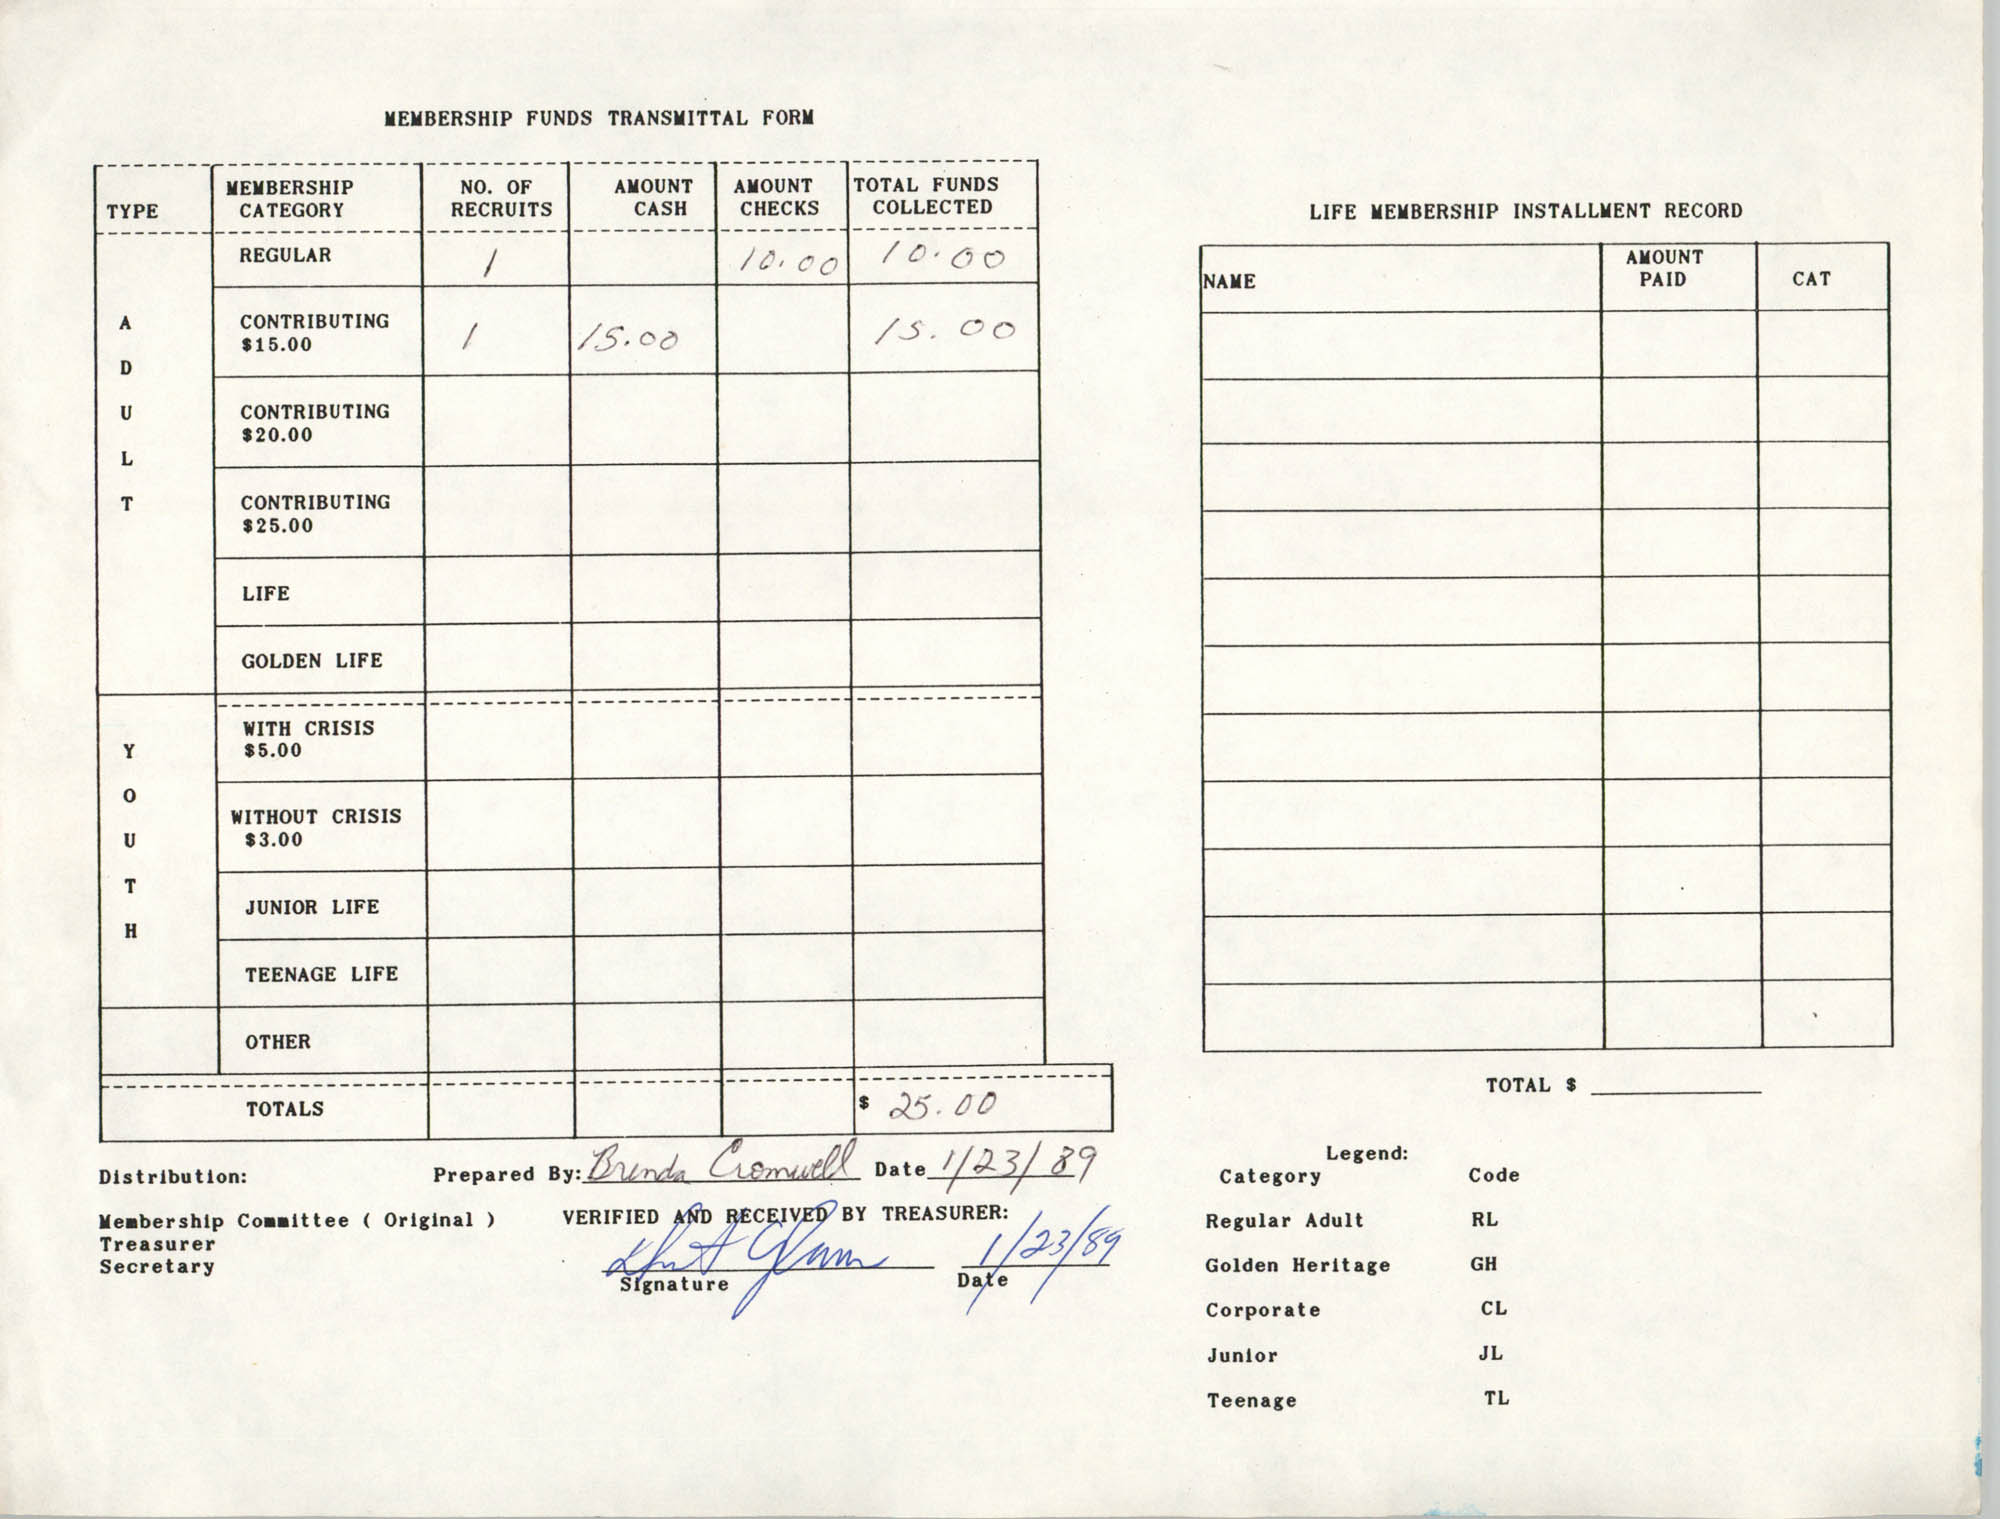 Charleston Branch of the NAACP Funds Transmittal Forms, January 1989, Page 1